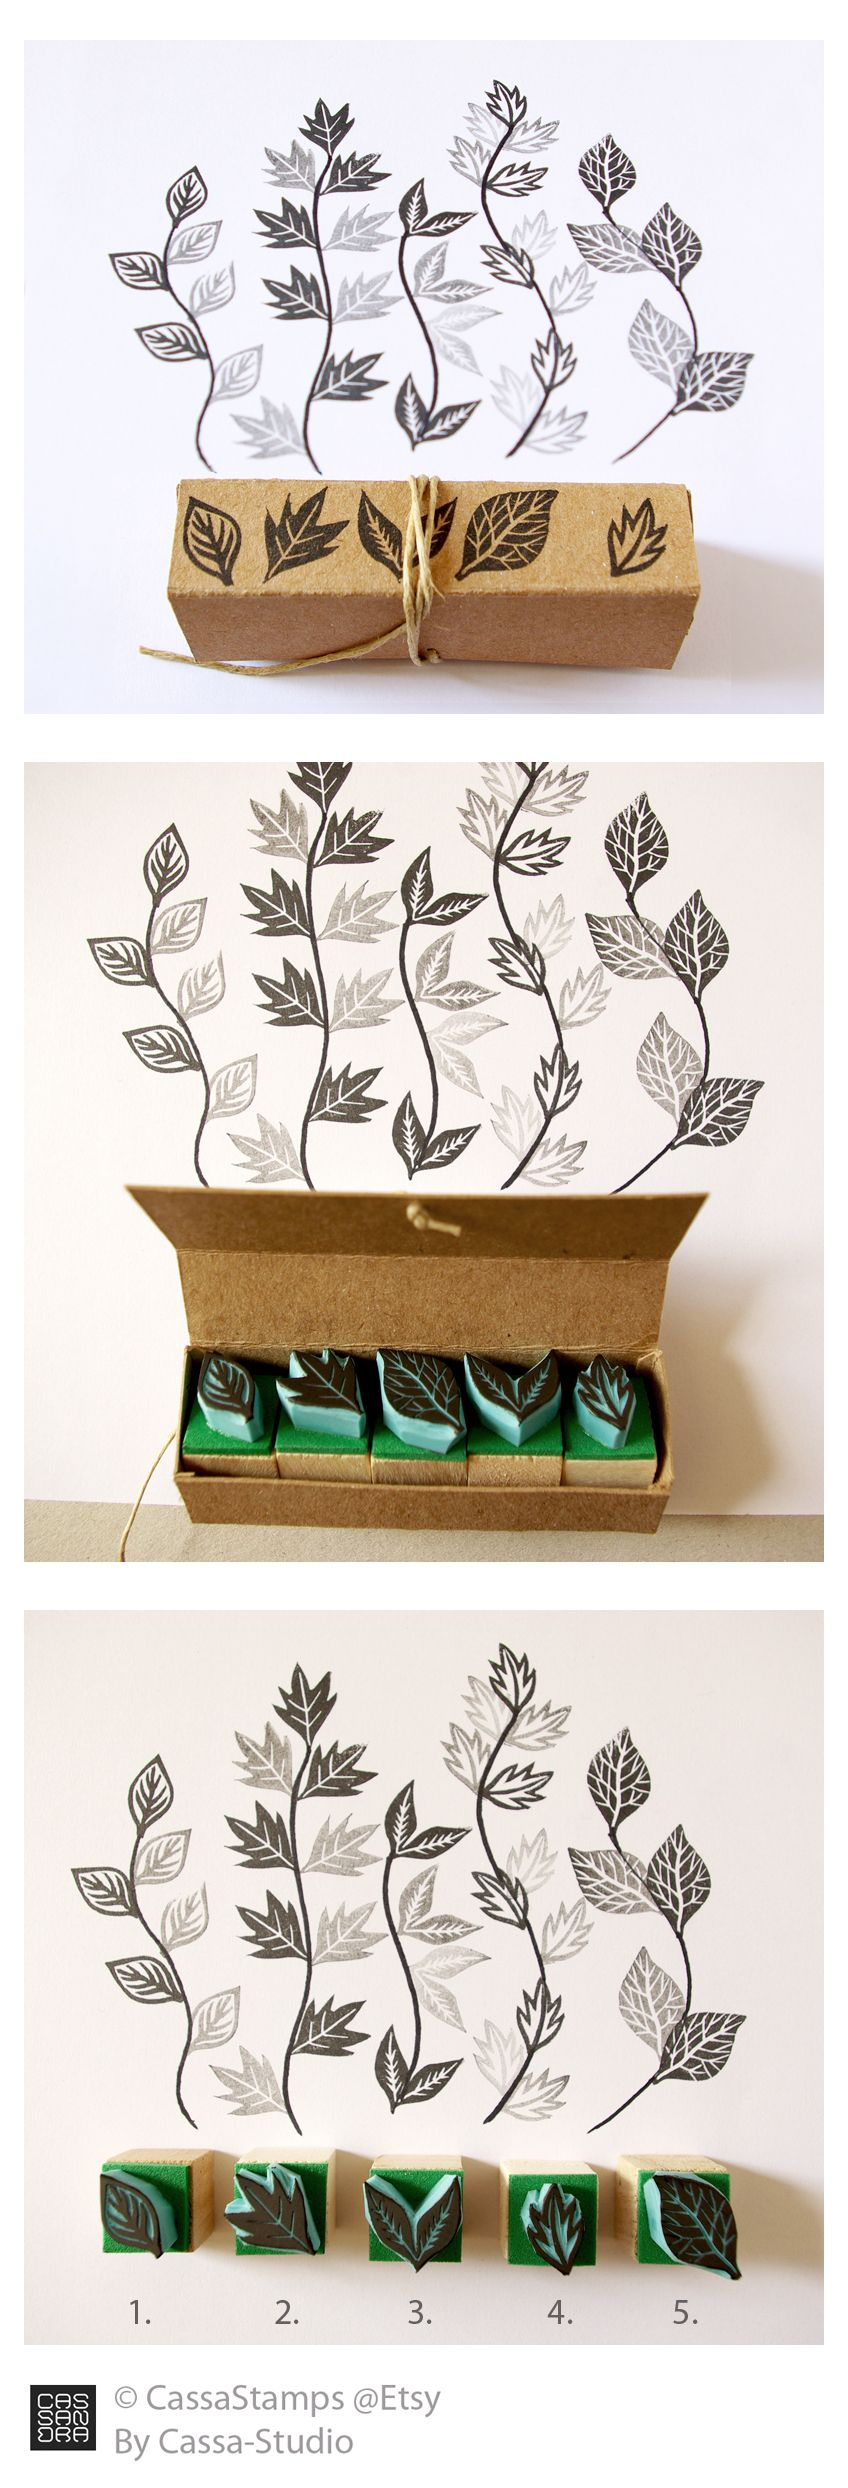 miniature rubber stamps of leaves by cassastamps etsy rubber